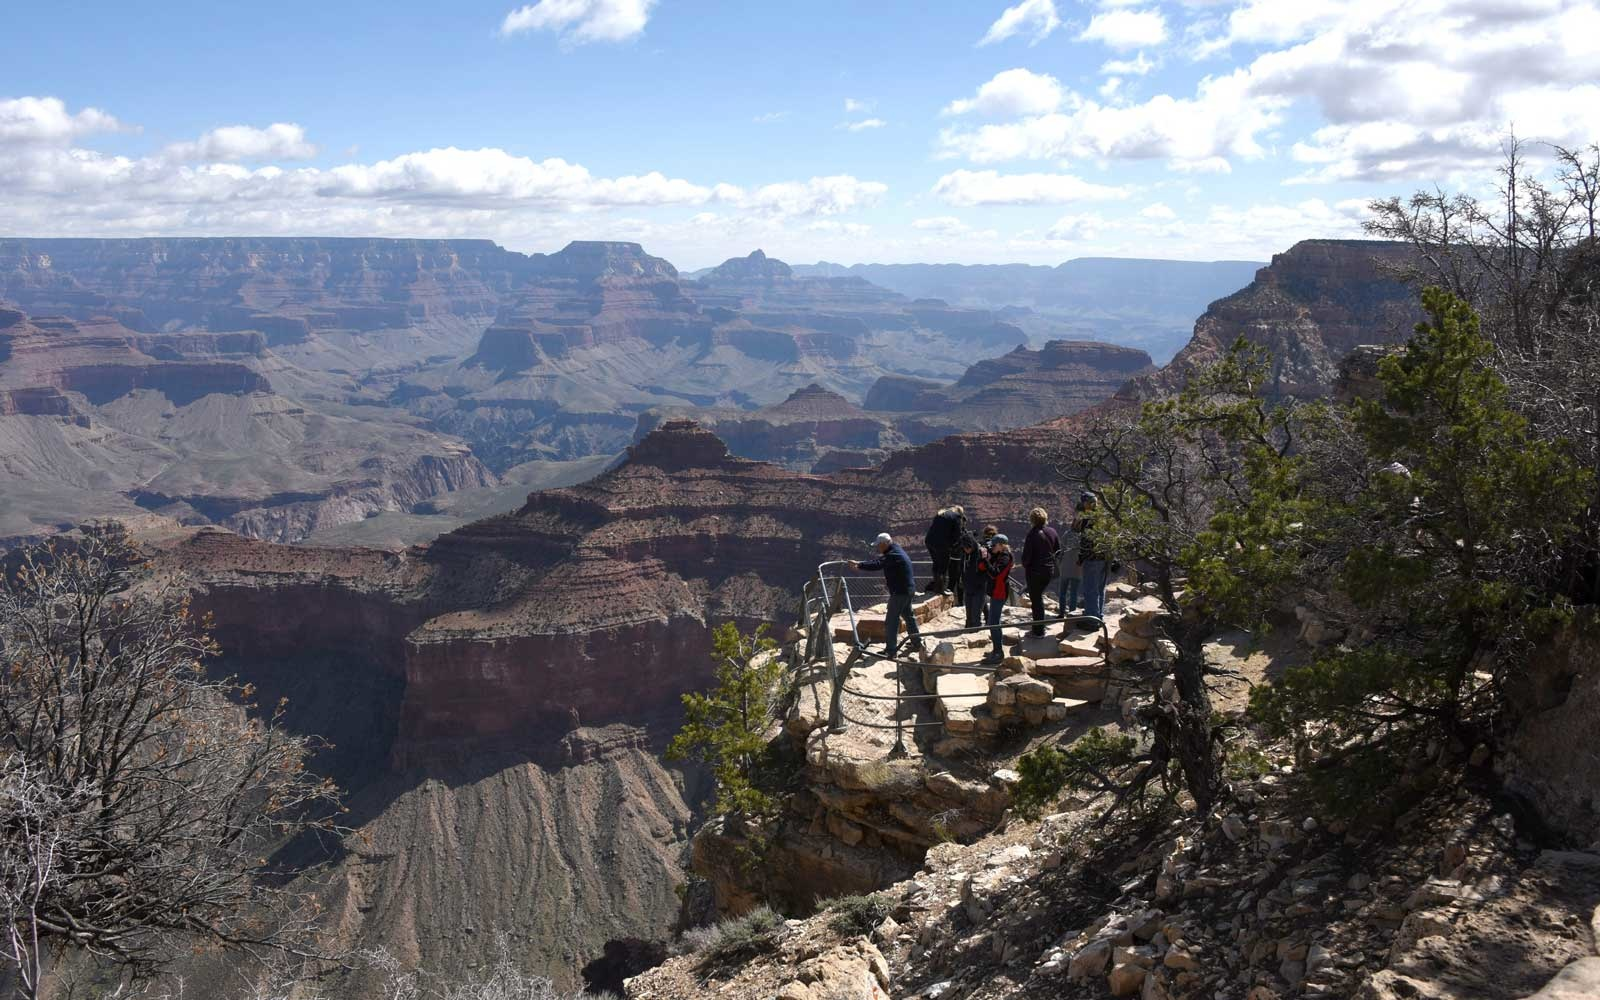 Tourist falls 400 feet to death at Grand Canyon